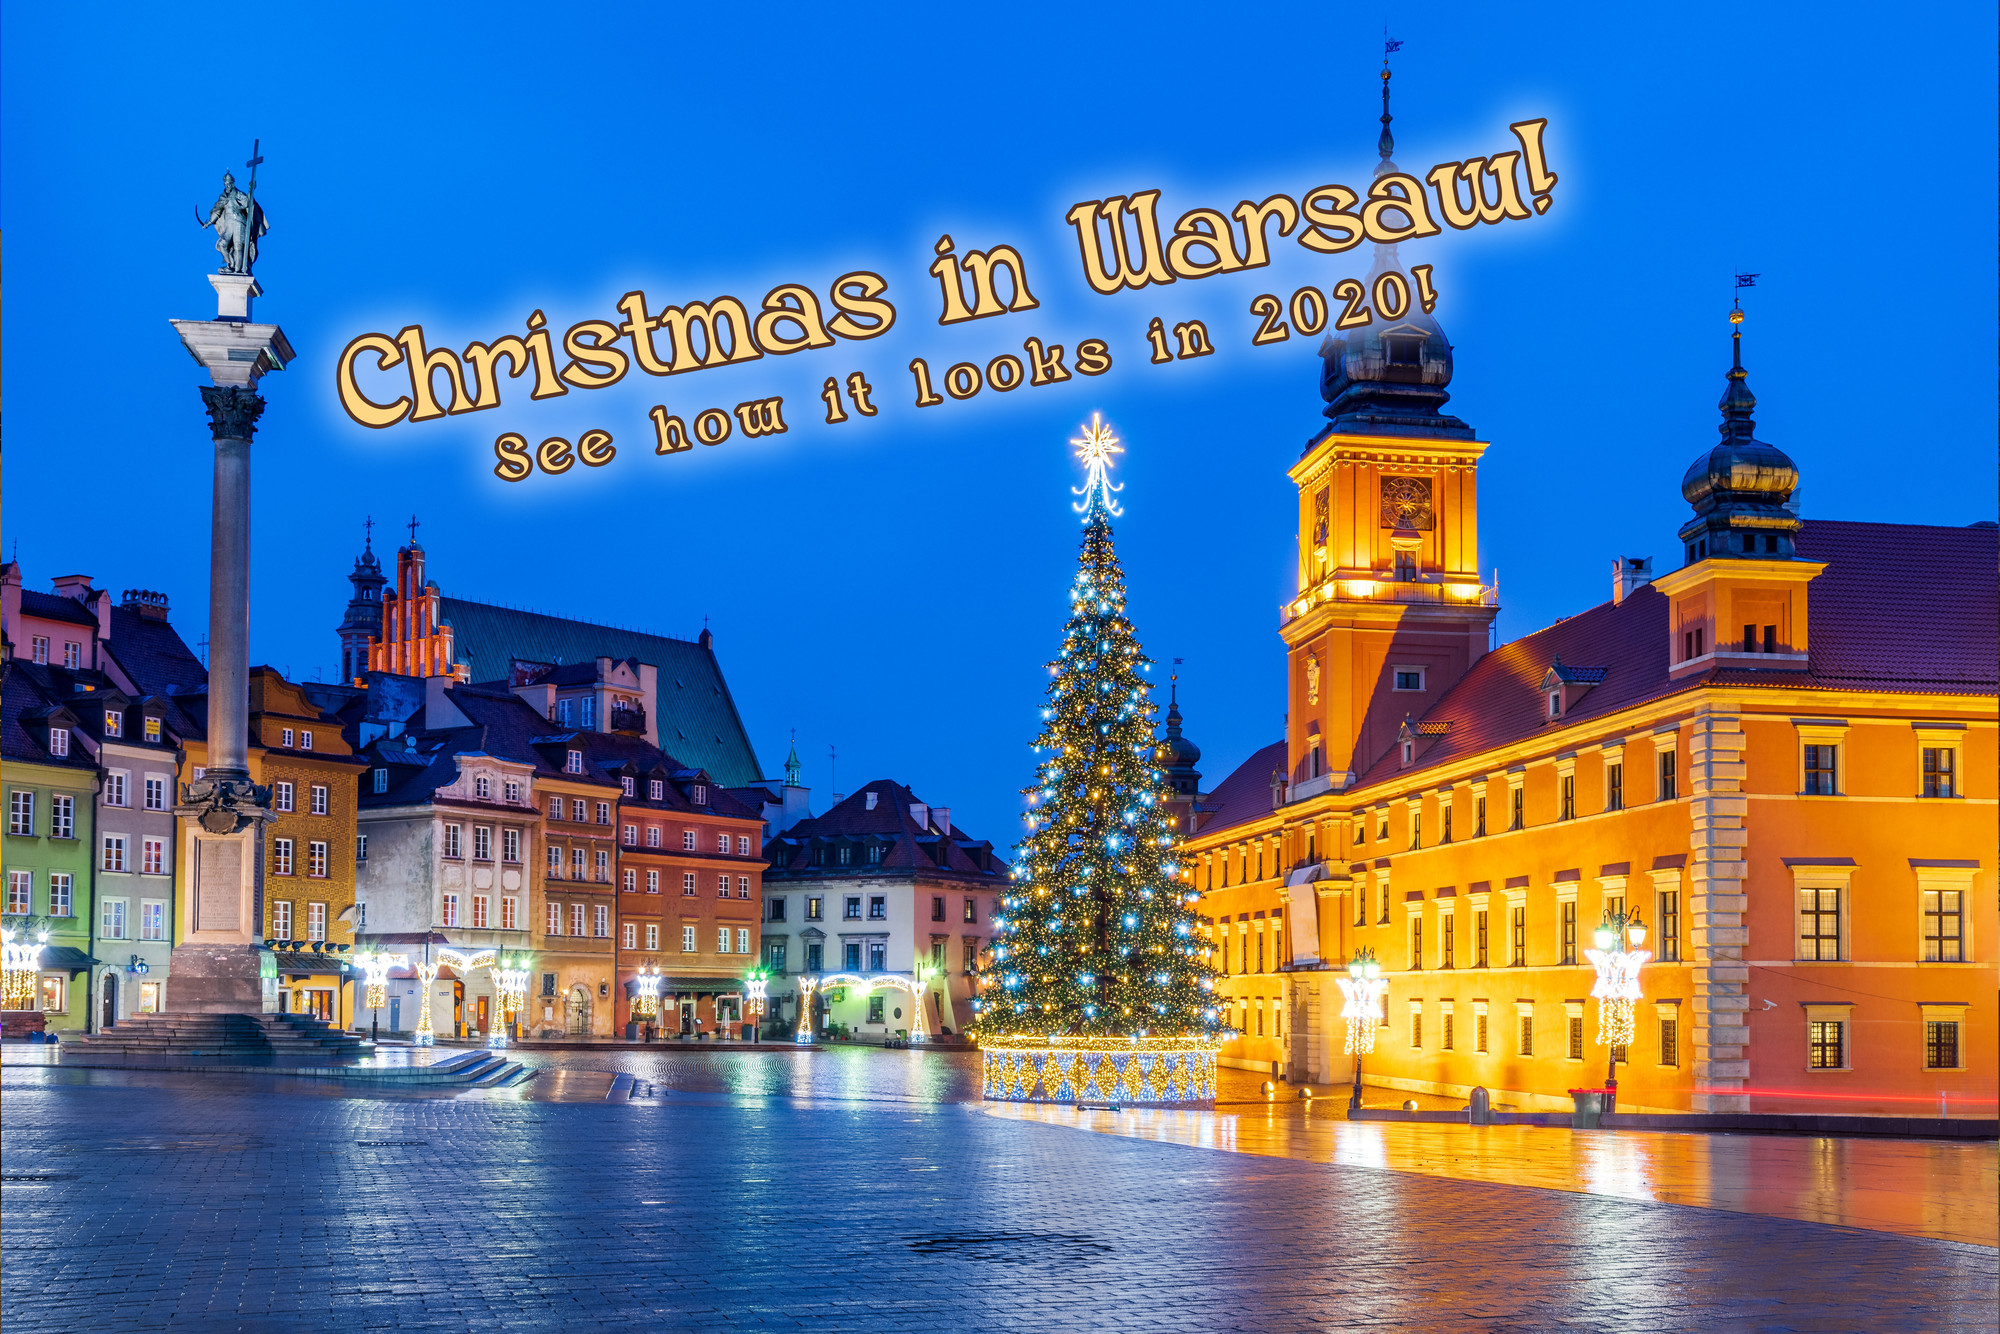 When Are Places Opening Today Warsaw Indiana 2021 Christmas Christmas And New Year Traditions In Warsaw